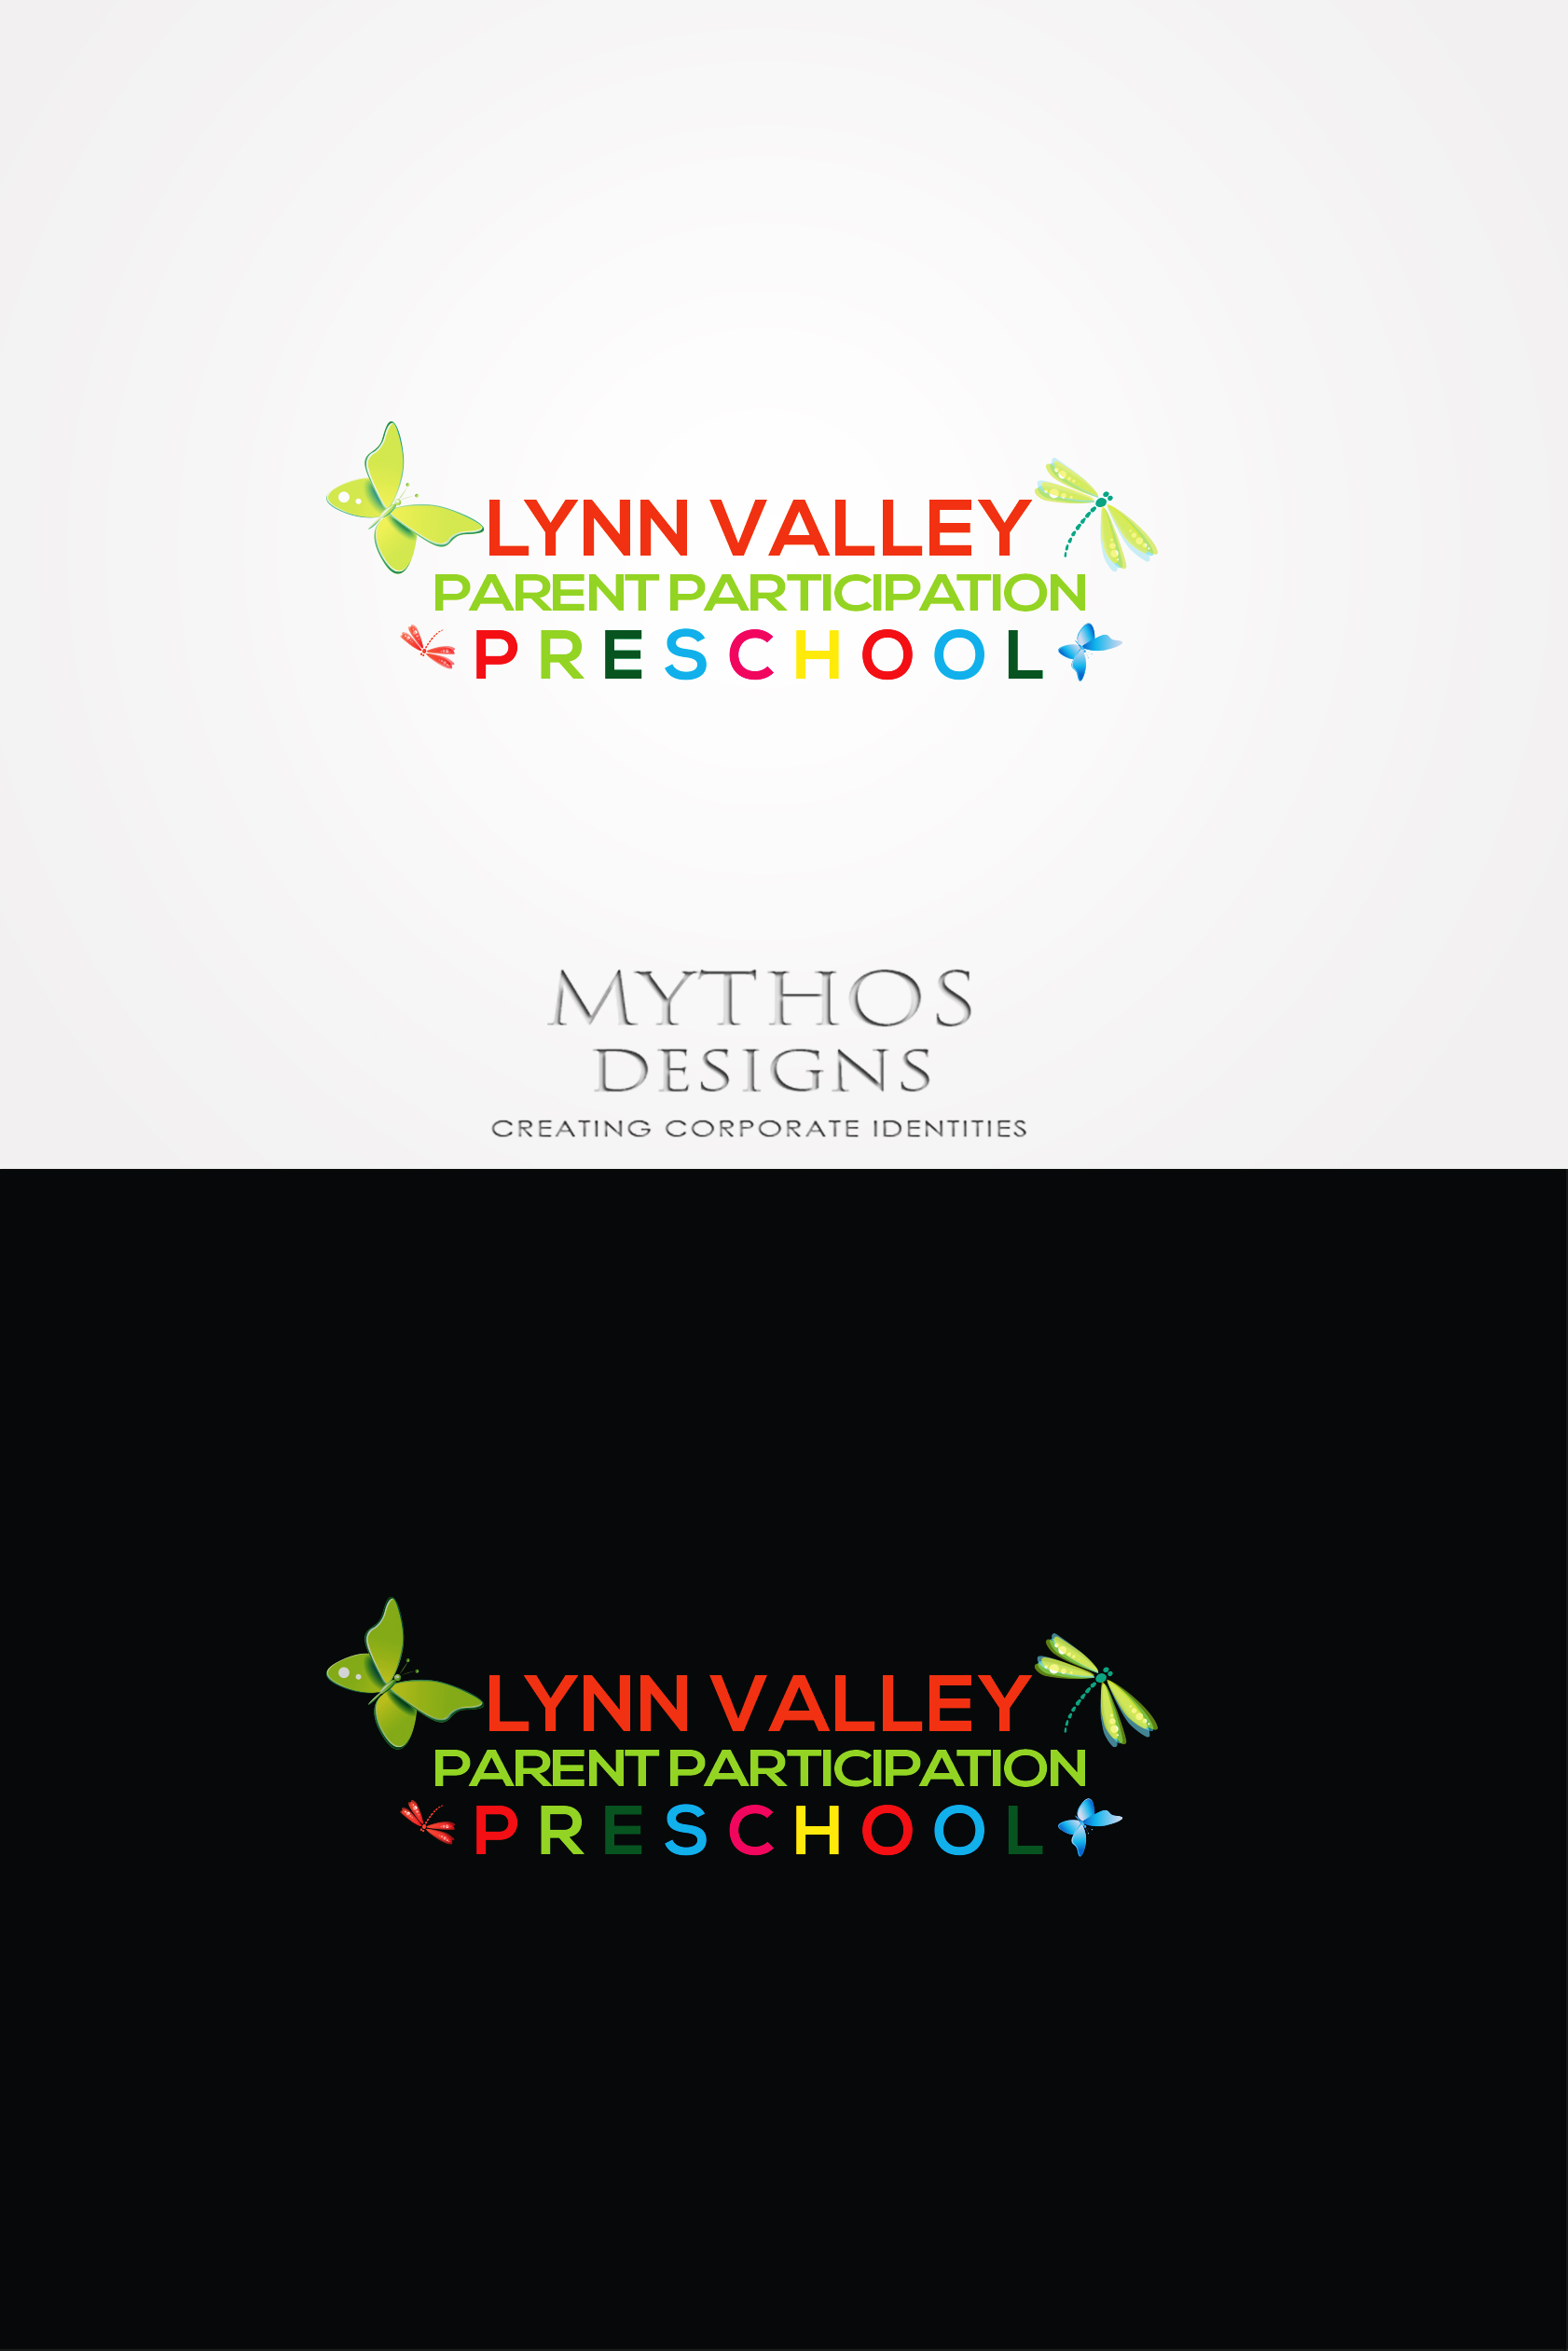 Logo Design by Mythos Designs - Entry No. 53 in the Logo Design Contest New Logo Design for Lynn Valley Parent Participation Preschool.